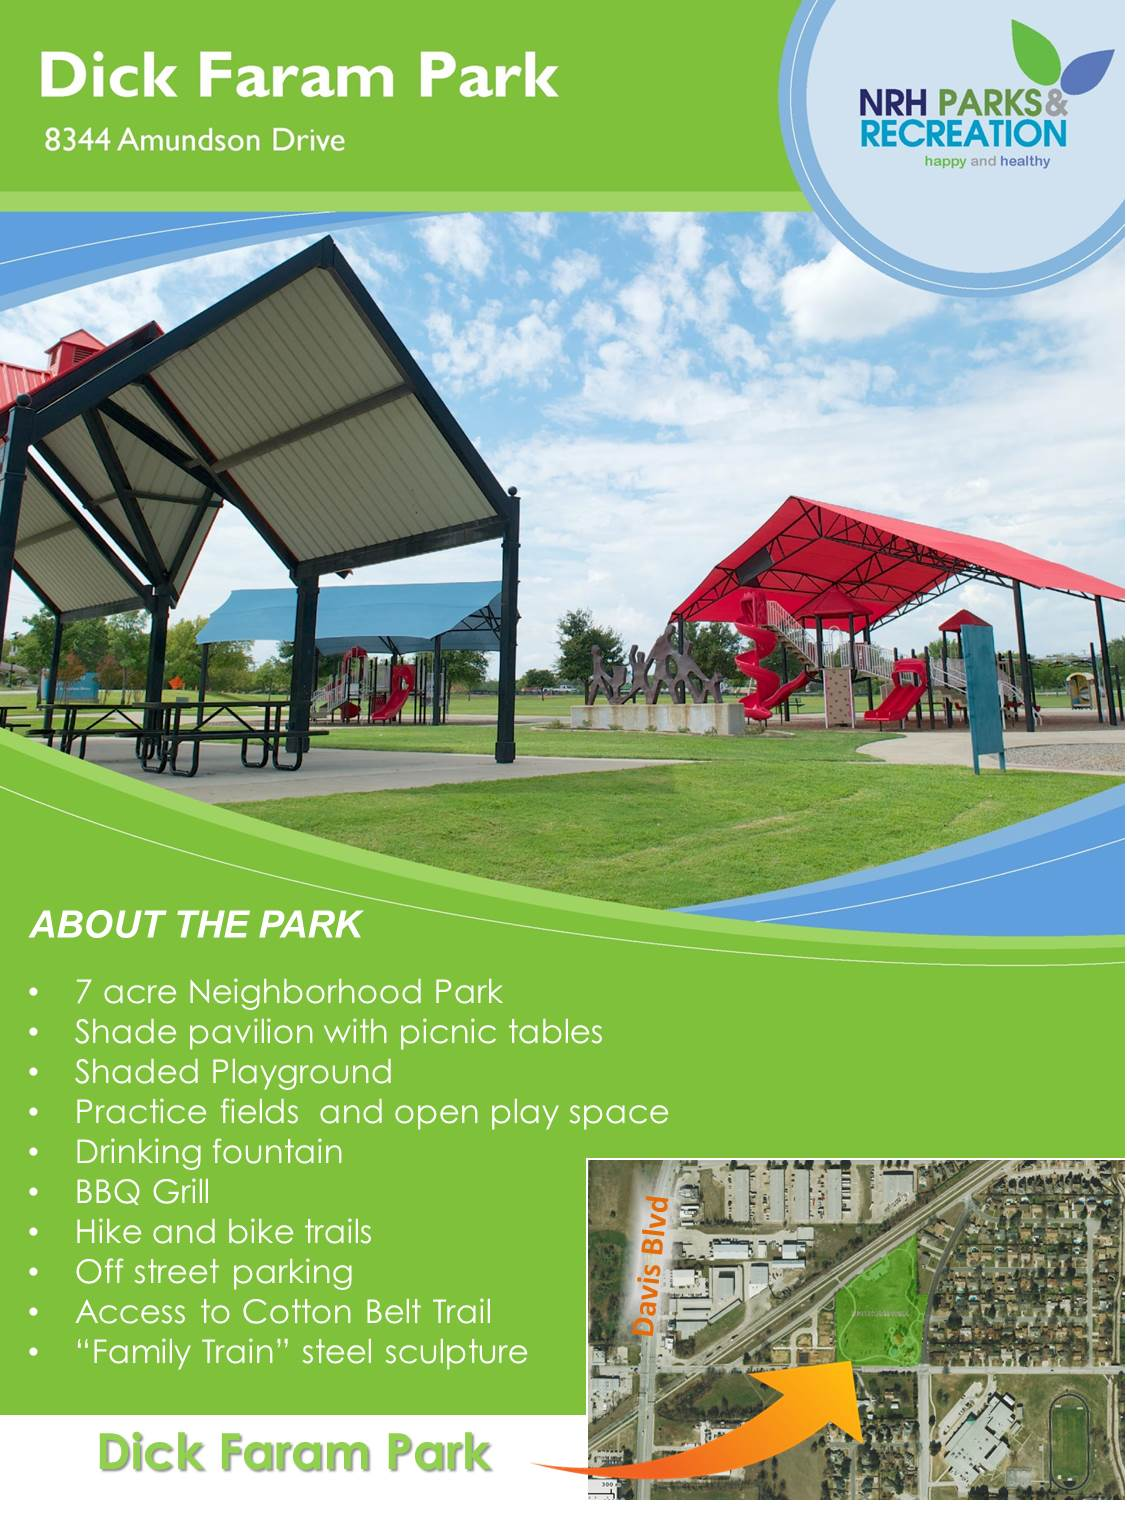 Dick Faram Park Fact Sheet.jpg